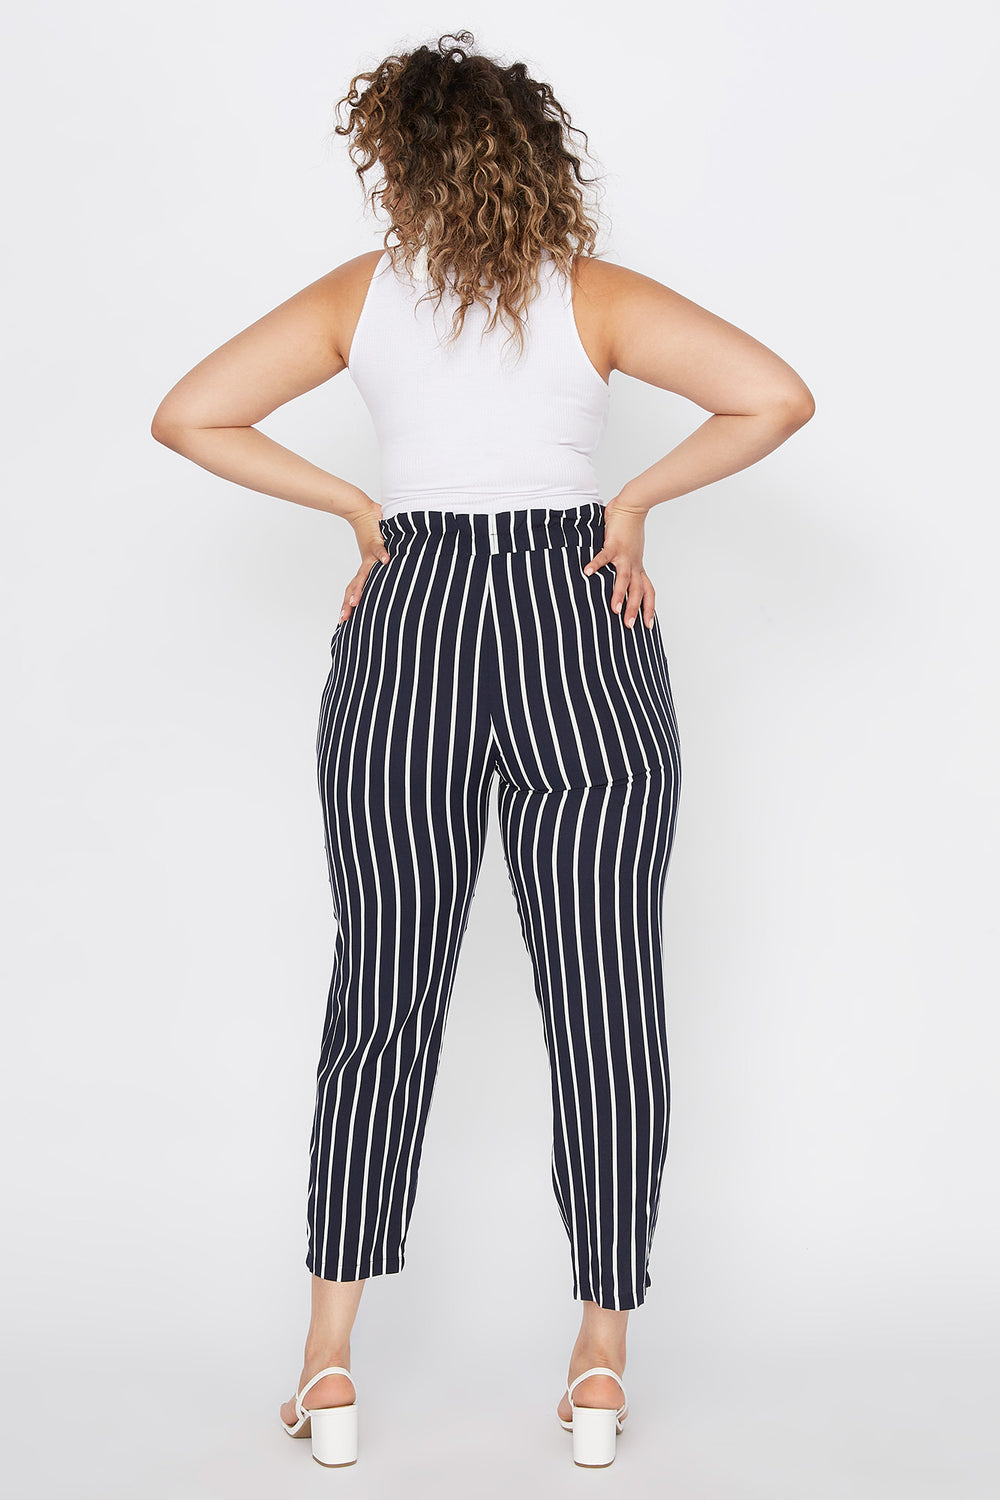 Plus Size Striped Paperbag Self Tie Cropped Pant Navy